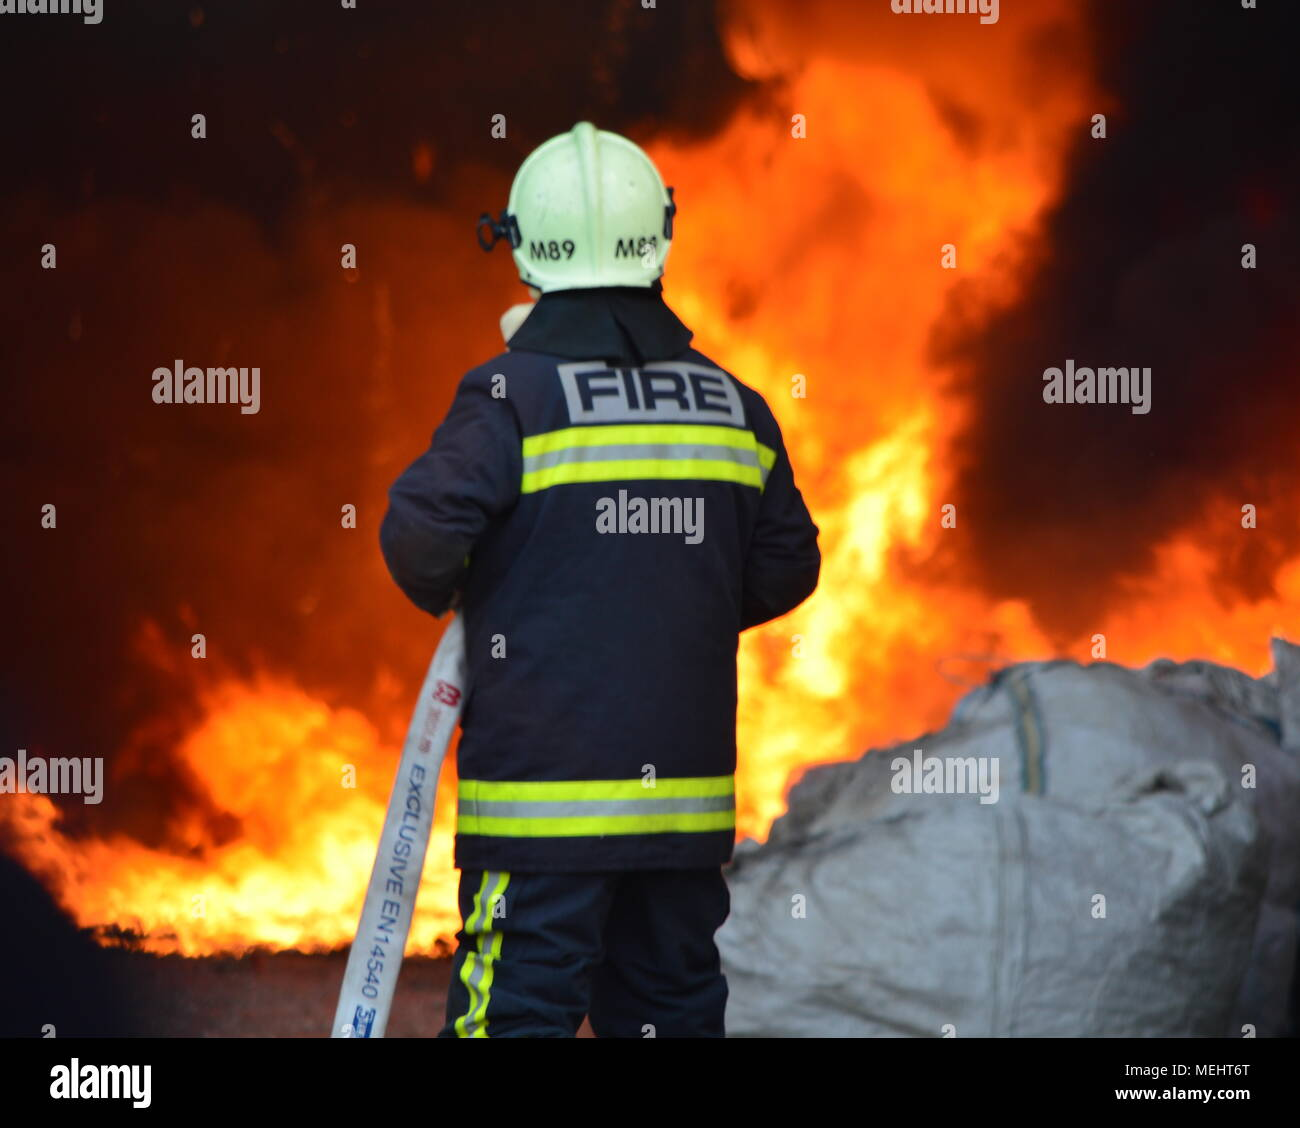 Kashar, Tirana-Albania, 22 April 2018. Huge fire burns completely a recycling company  in Kashar,  10 fire-units already on the scene struggling to extinguish the flames. NO injures or fatalities are reported Credit: Antonio Cakshiri/Alamy Live News Stock Photo